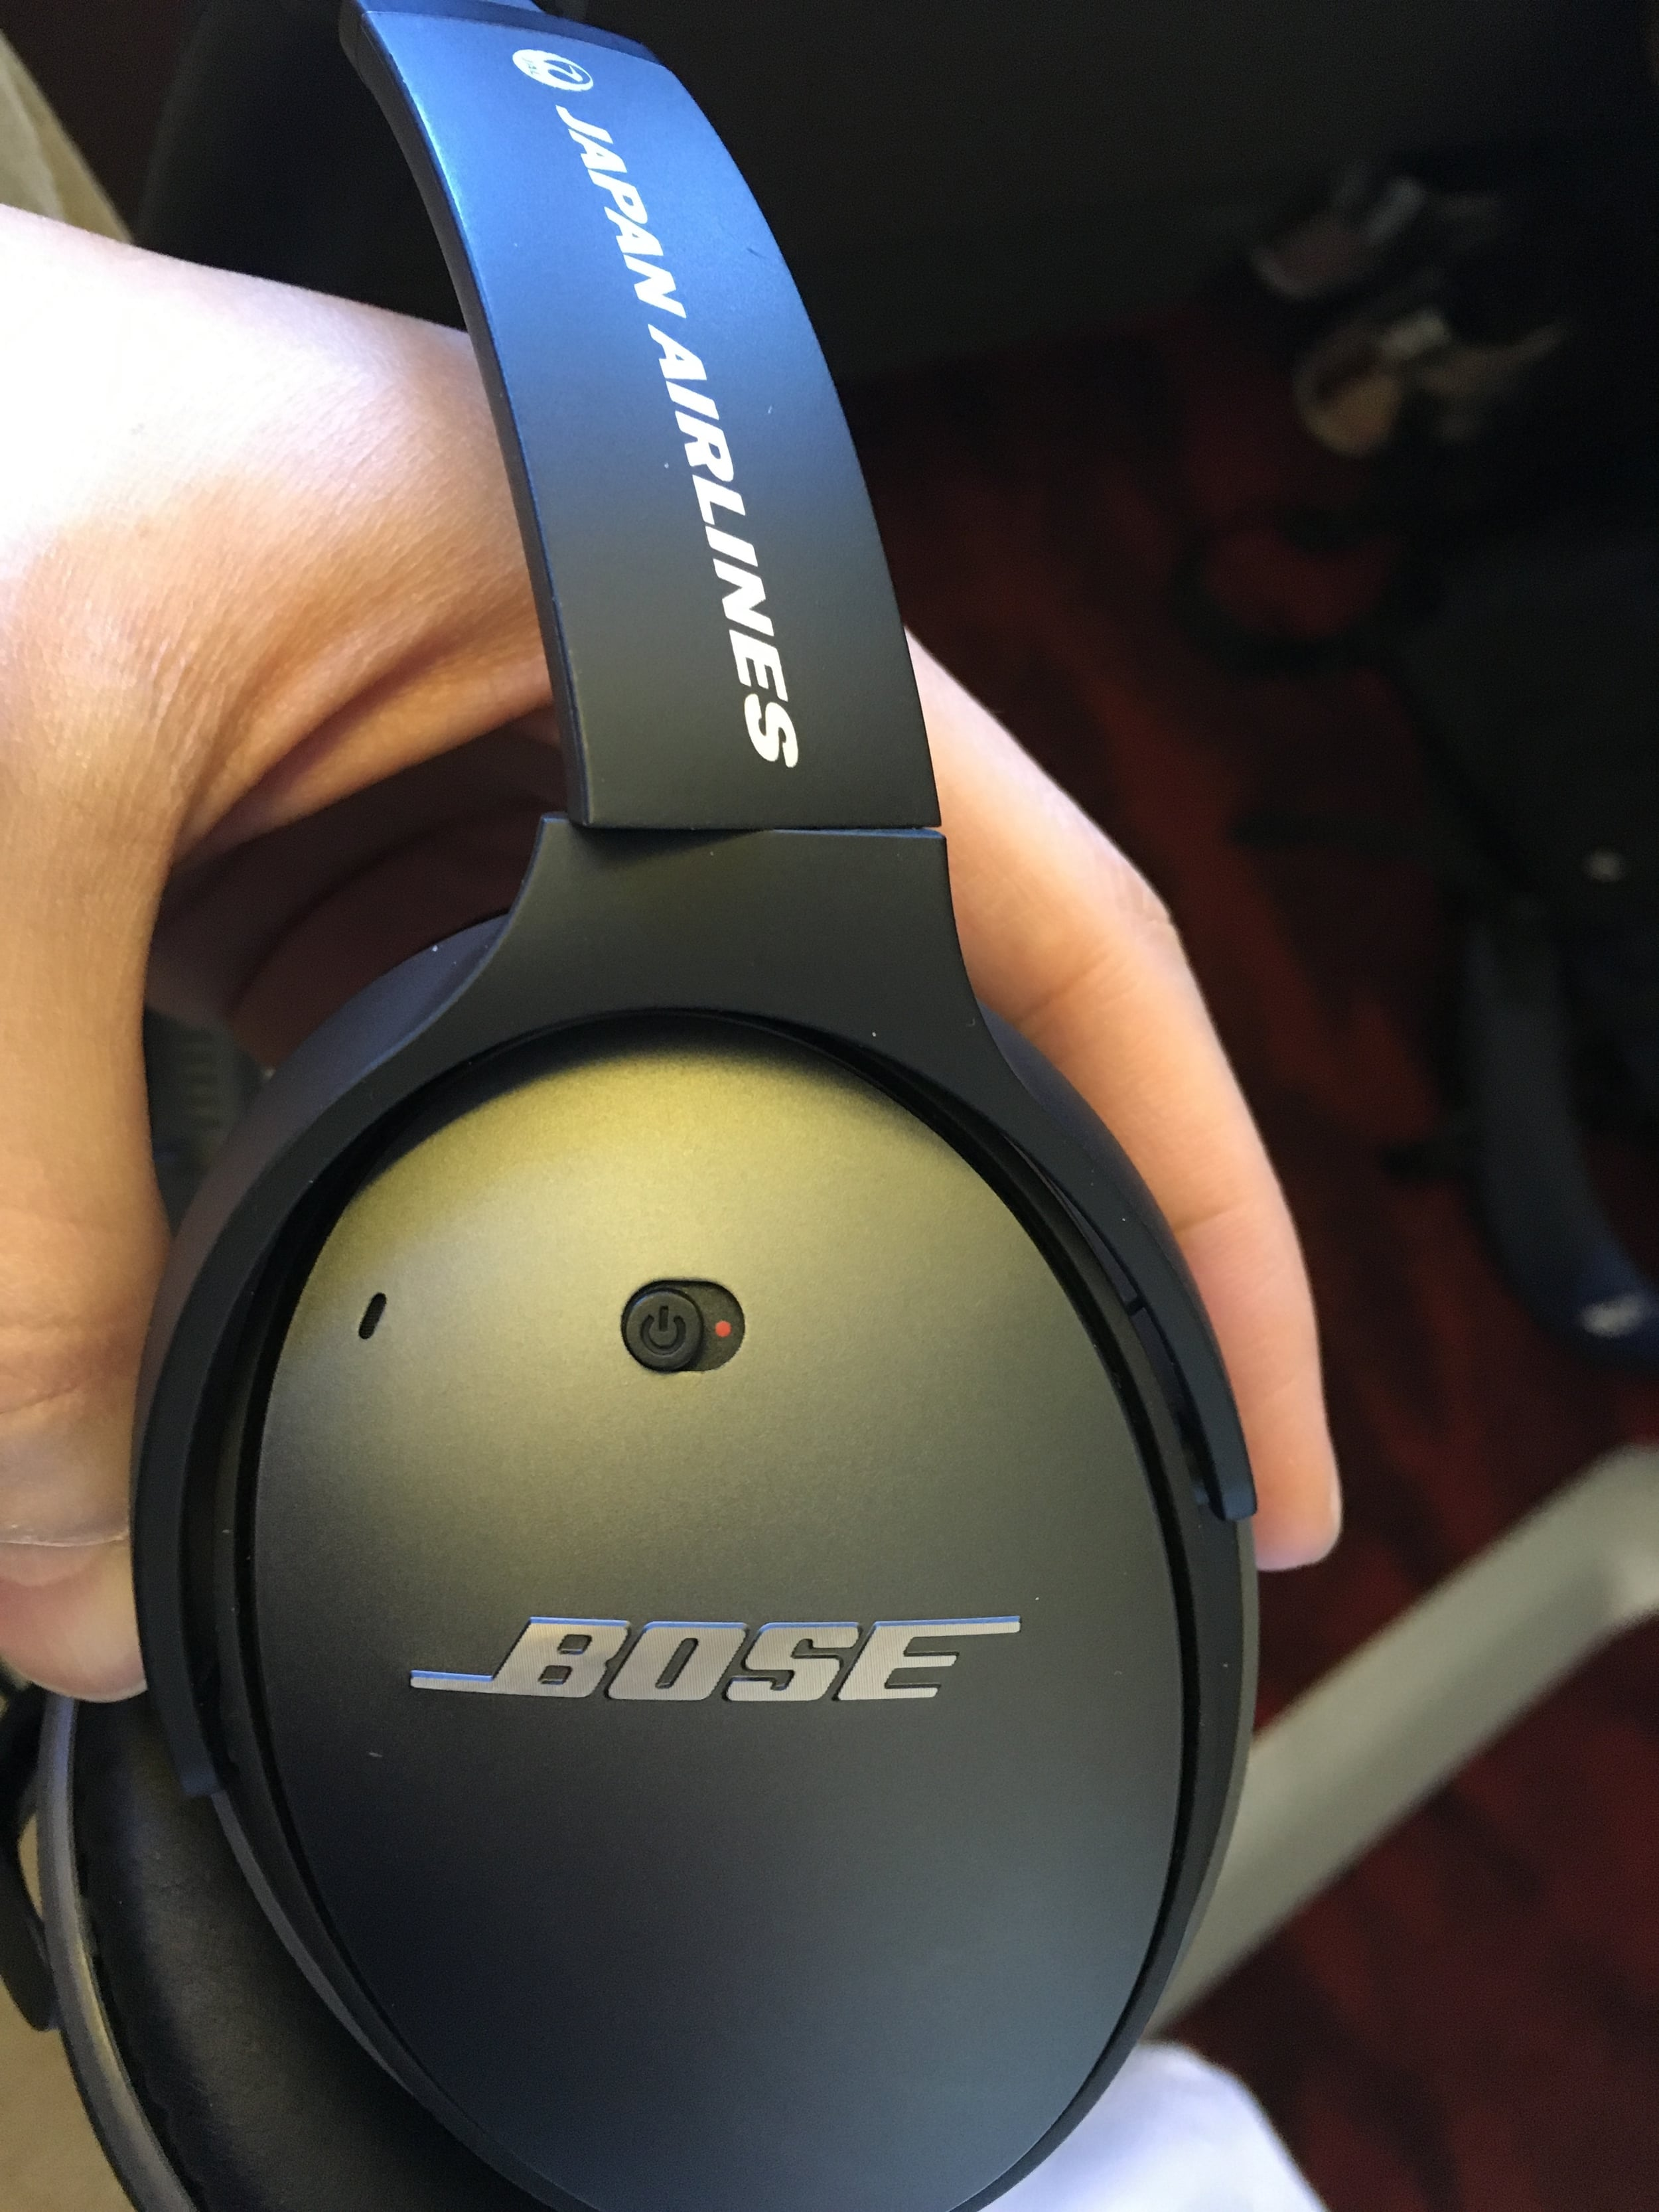 Customized Bose Noise Canceling headphones...makes all the difference.